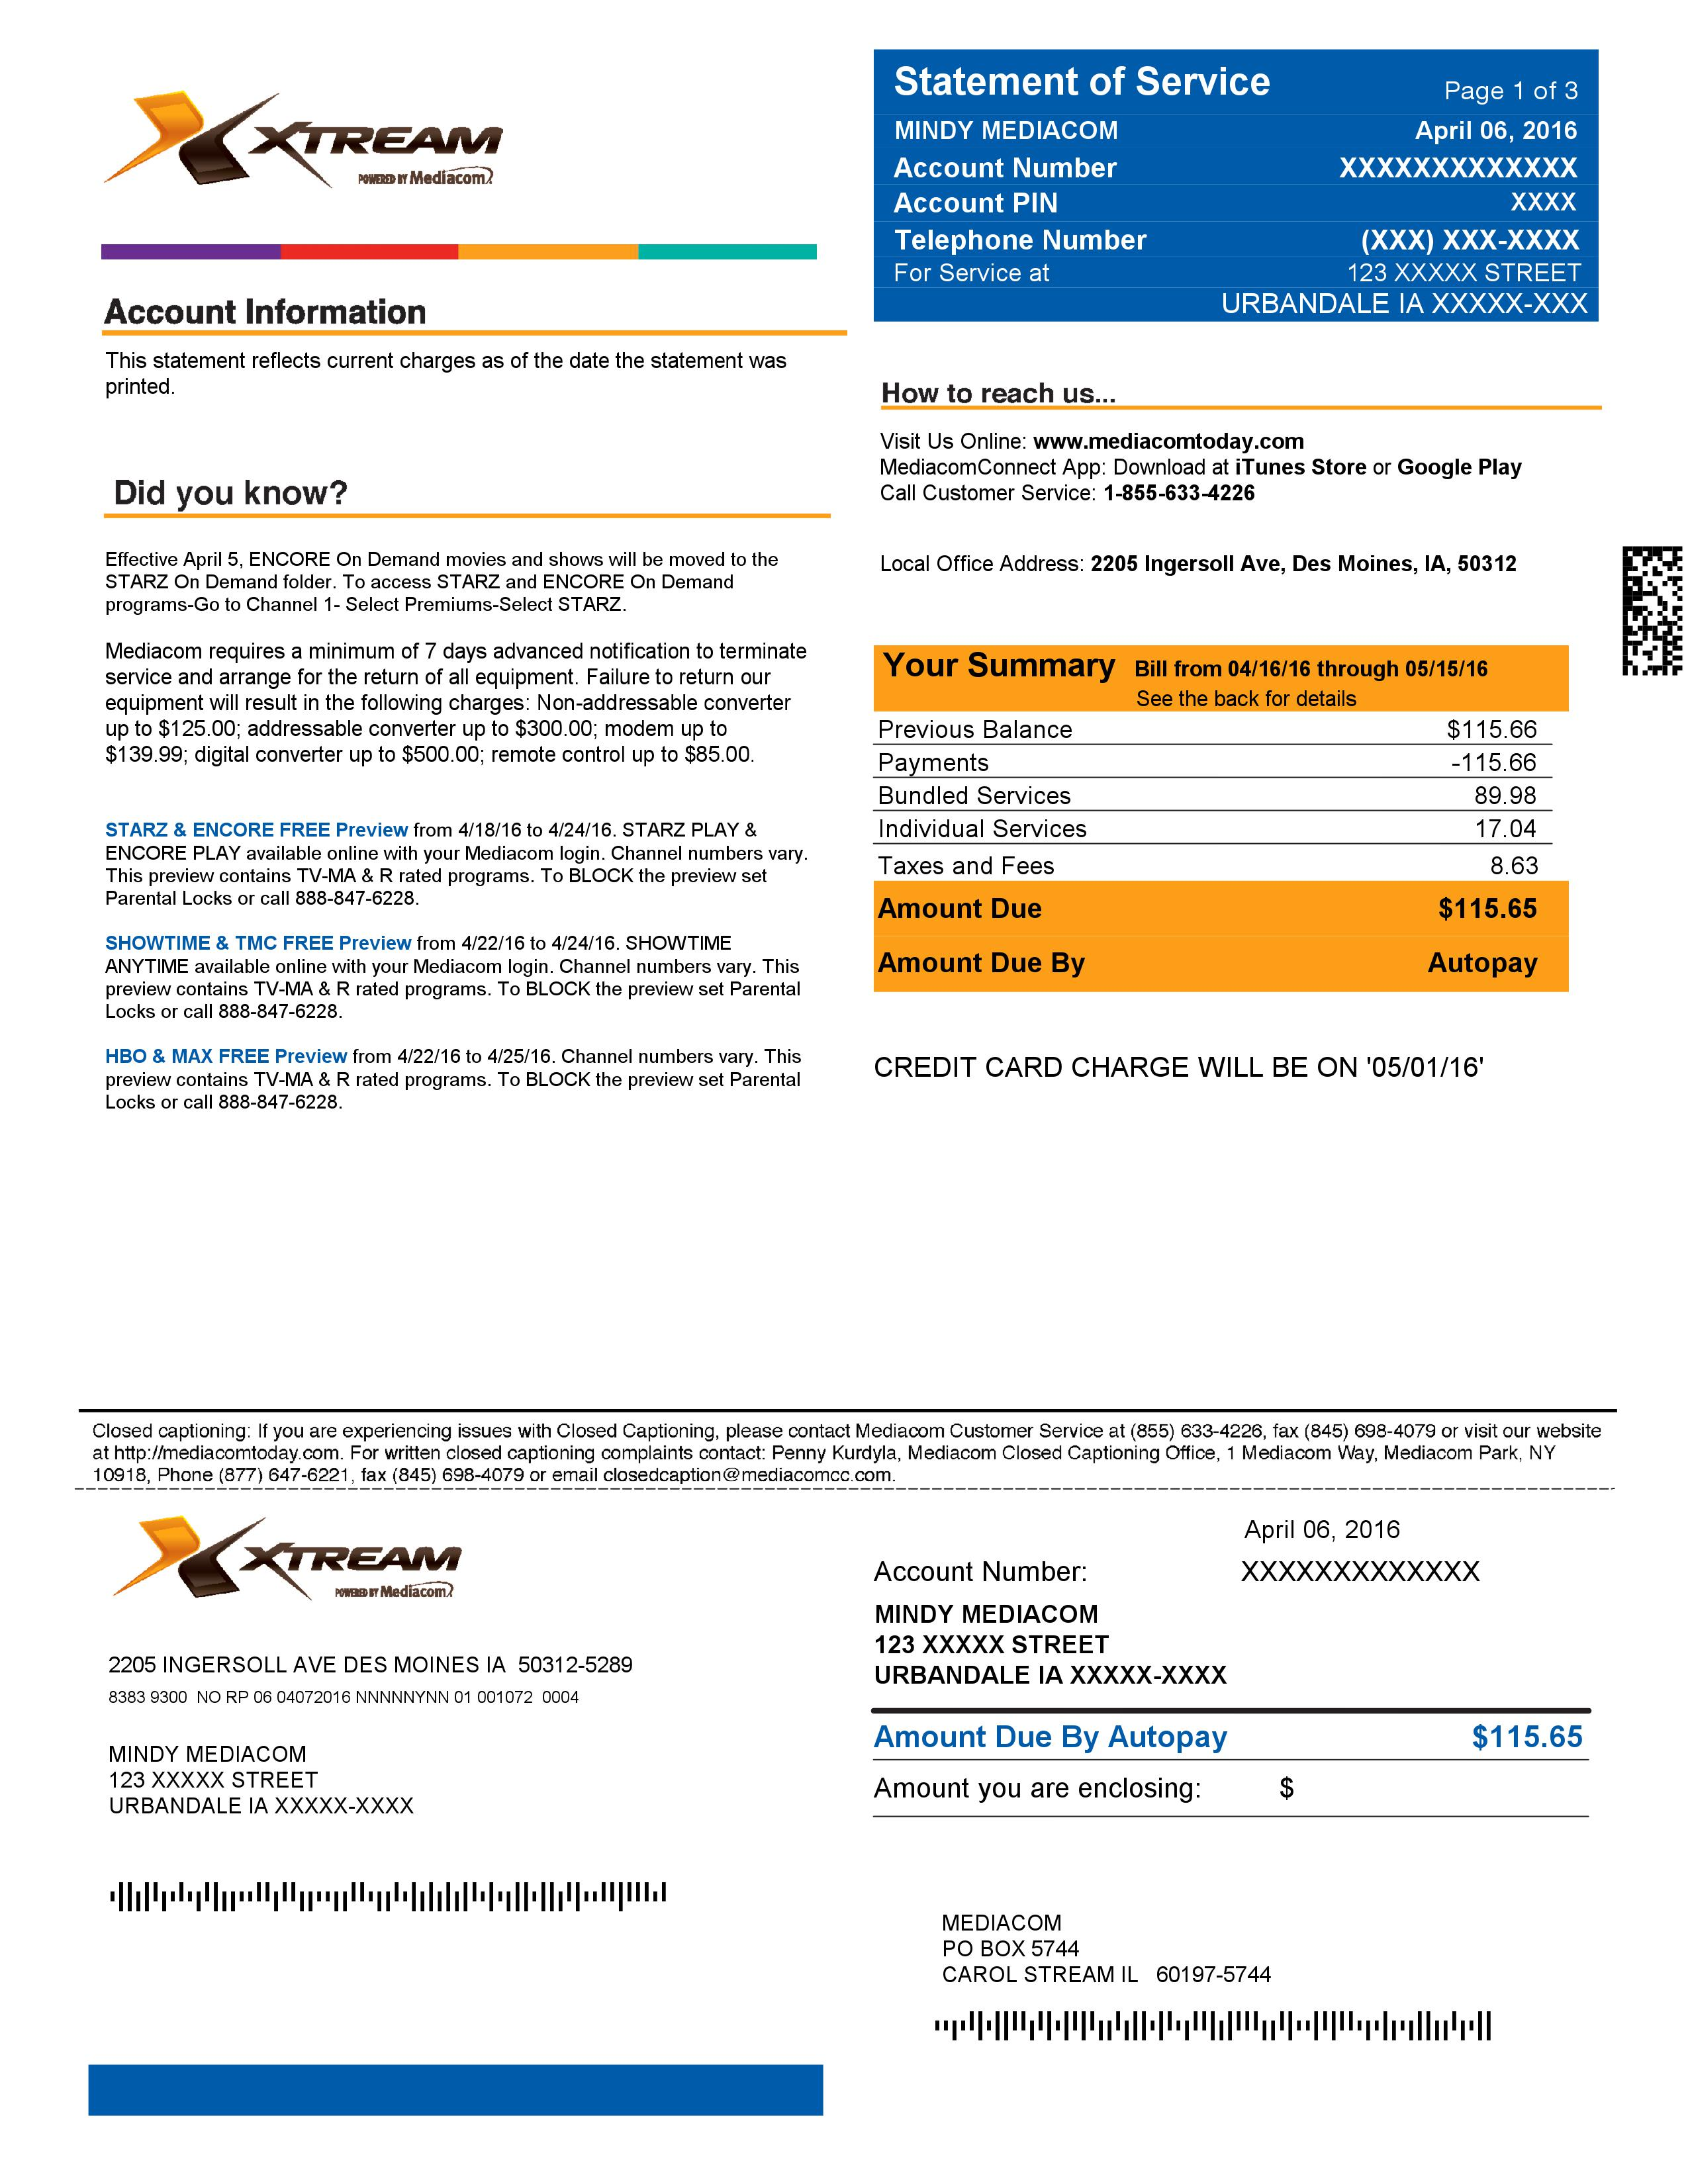 Mediacom's New Billing Statement Overview